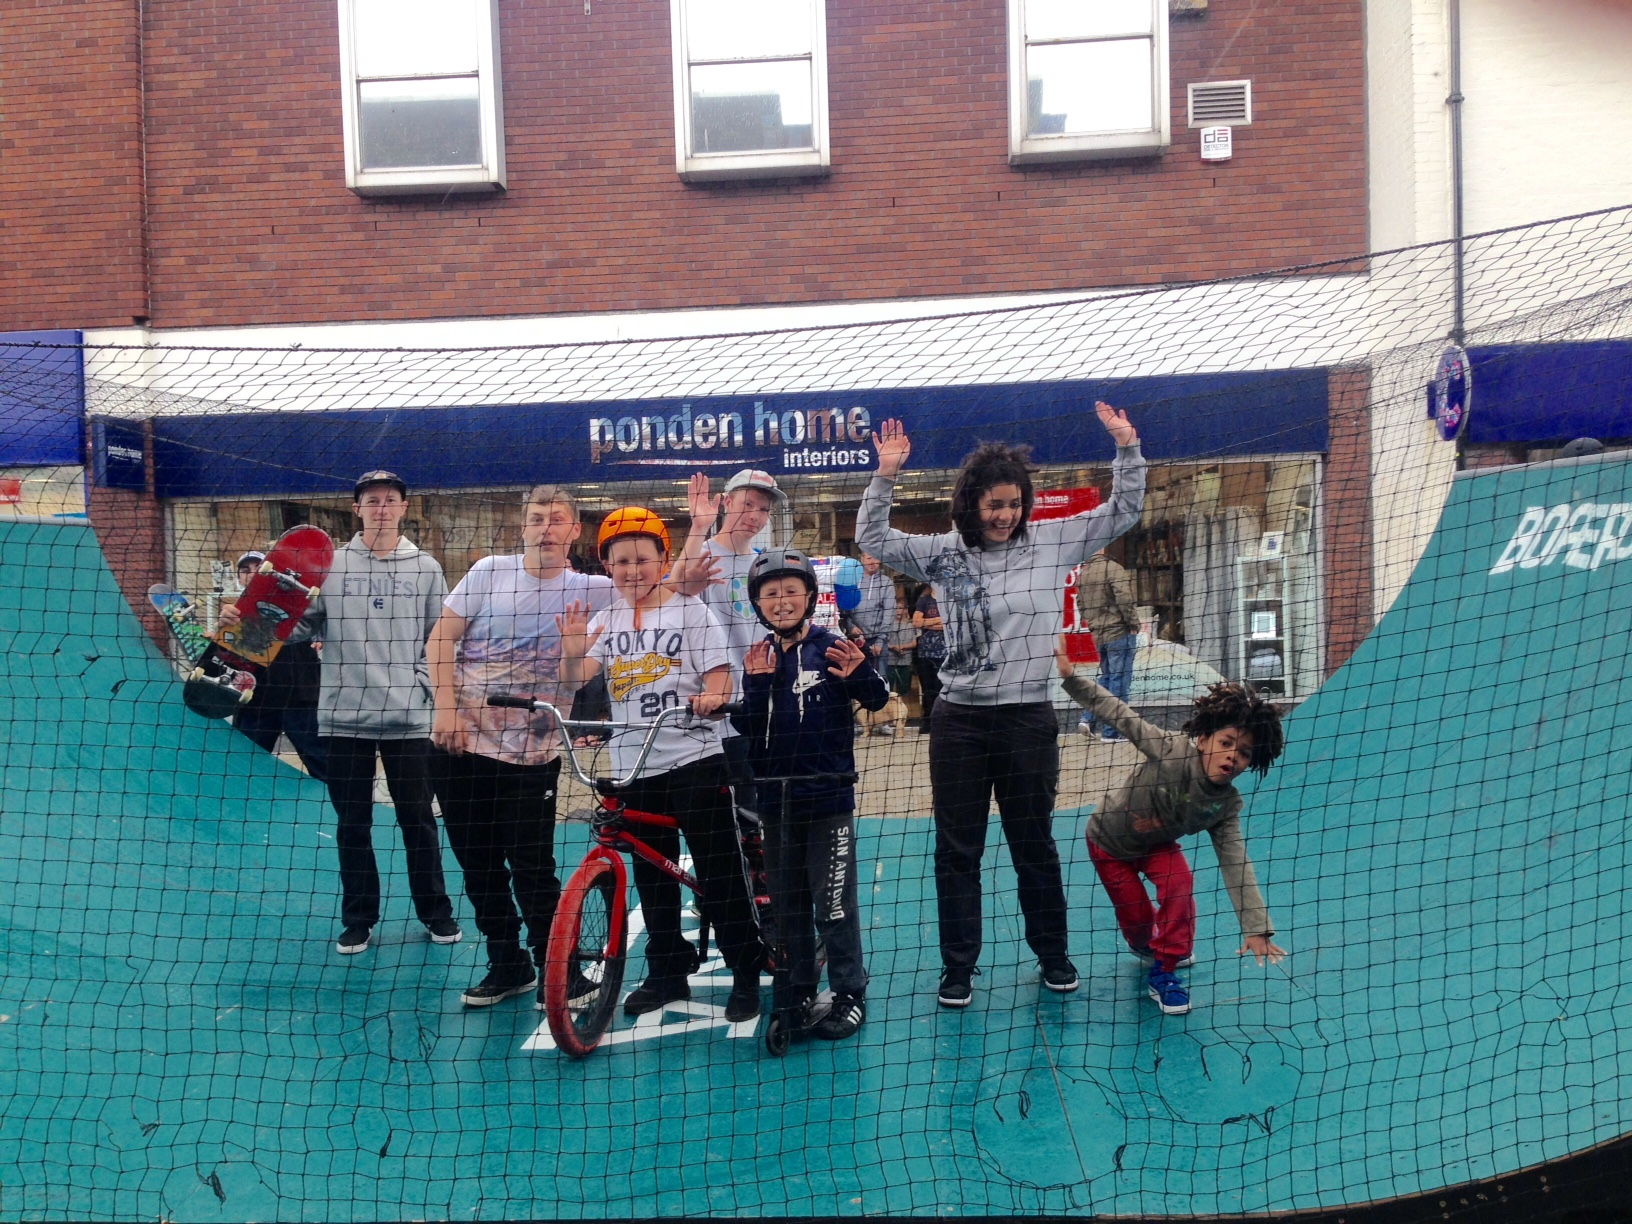 Skaters and riders at the event in a Bromsgrove's high street